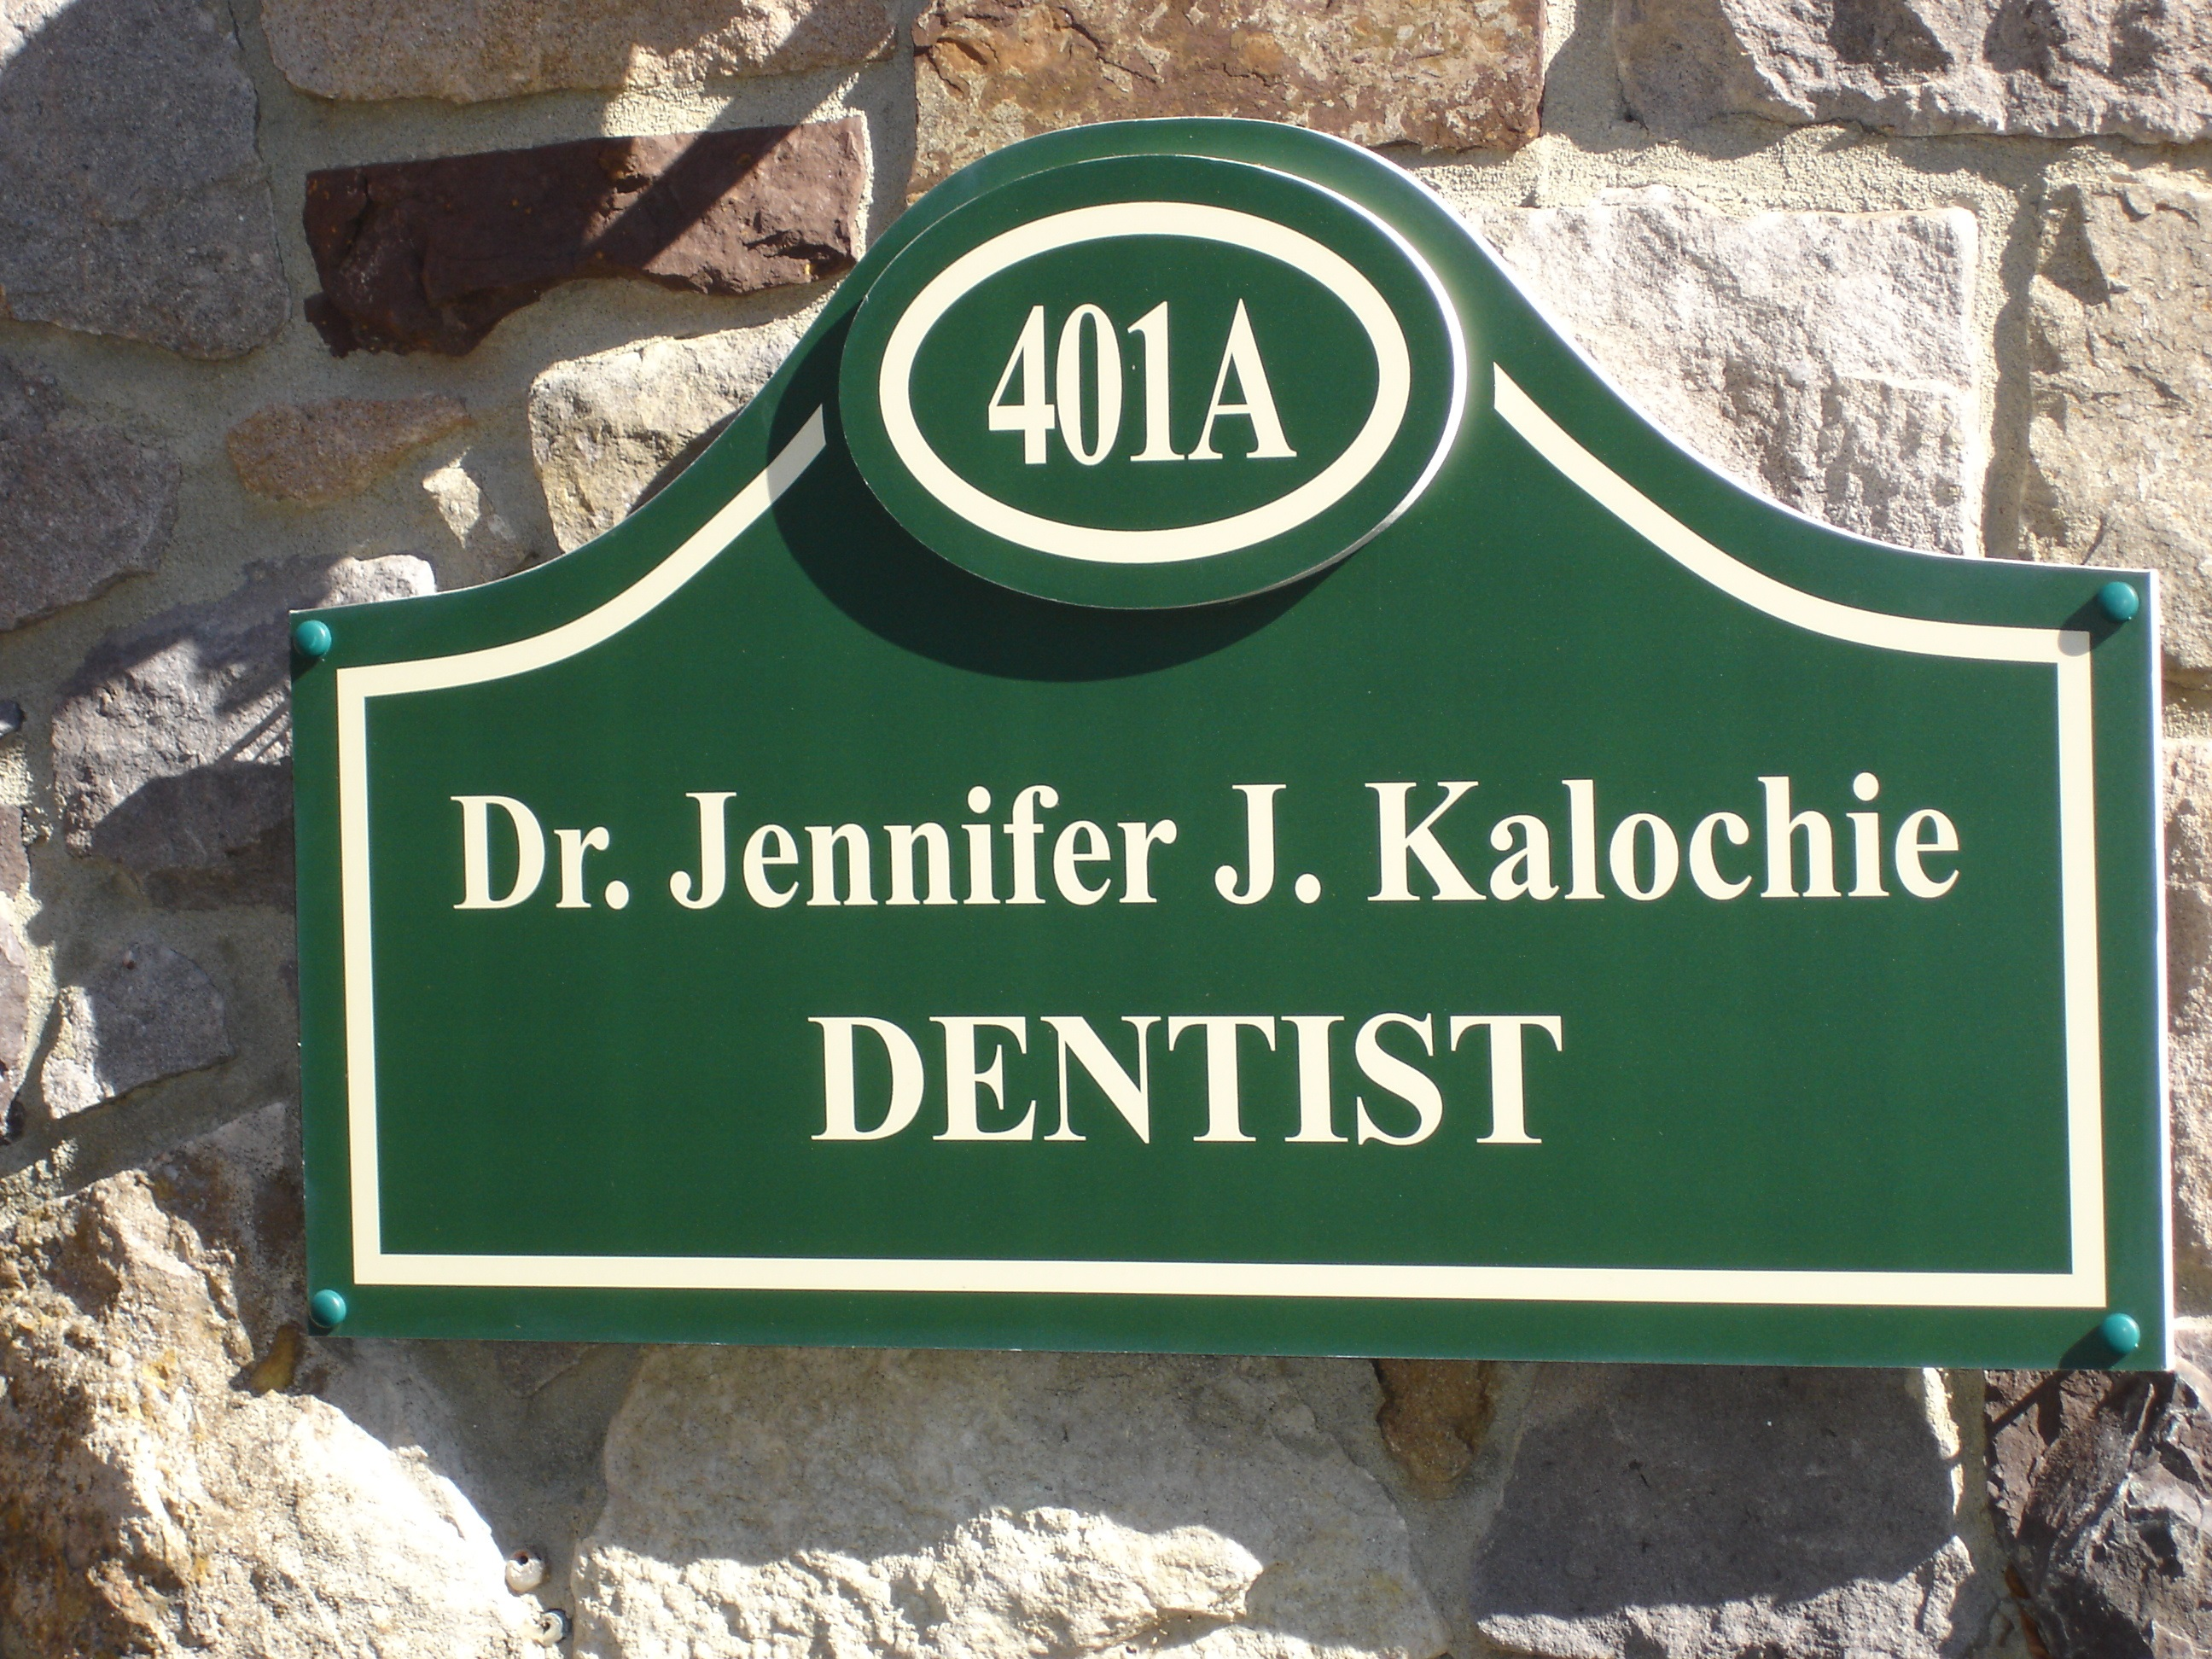 Outside image of sign for Dr. Kalochie